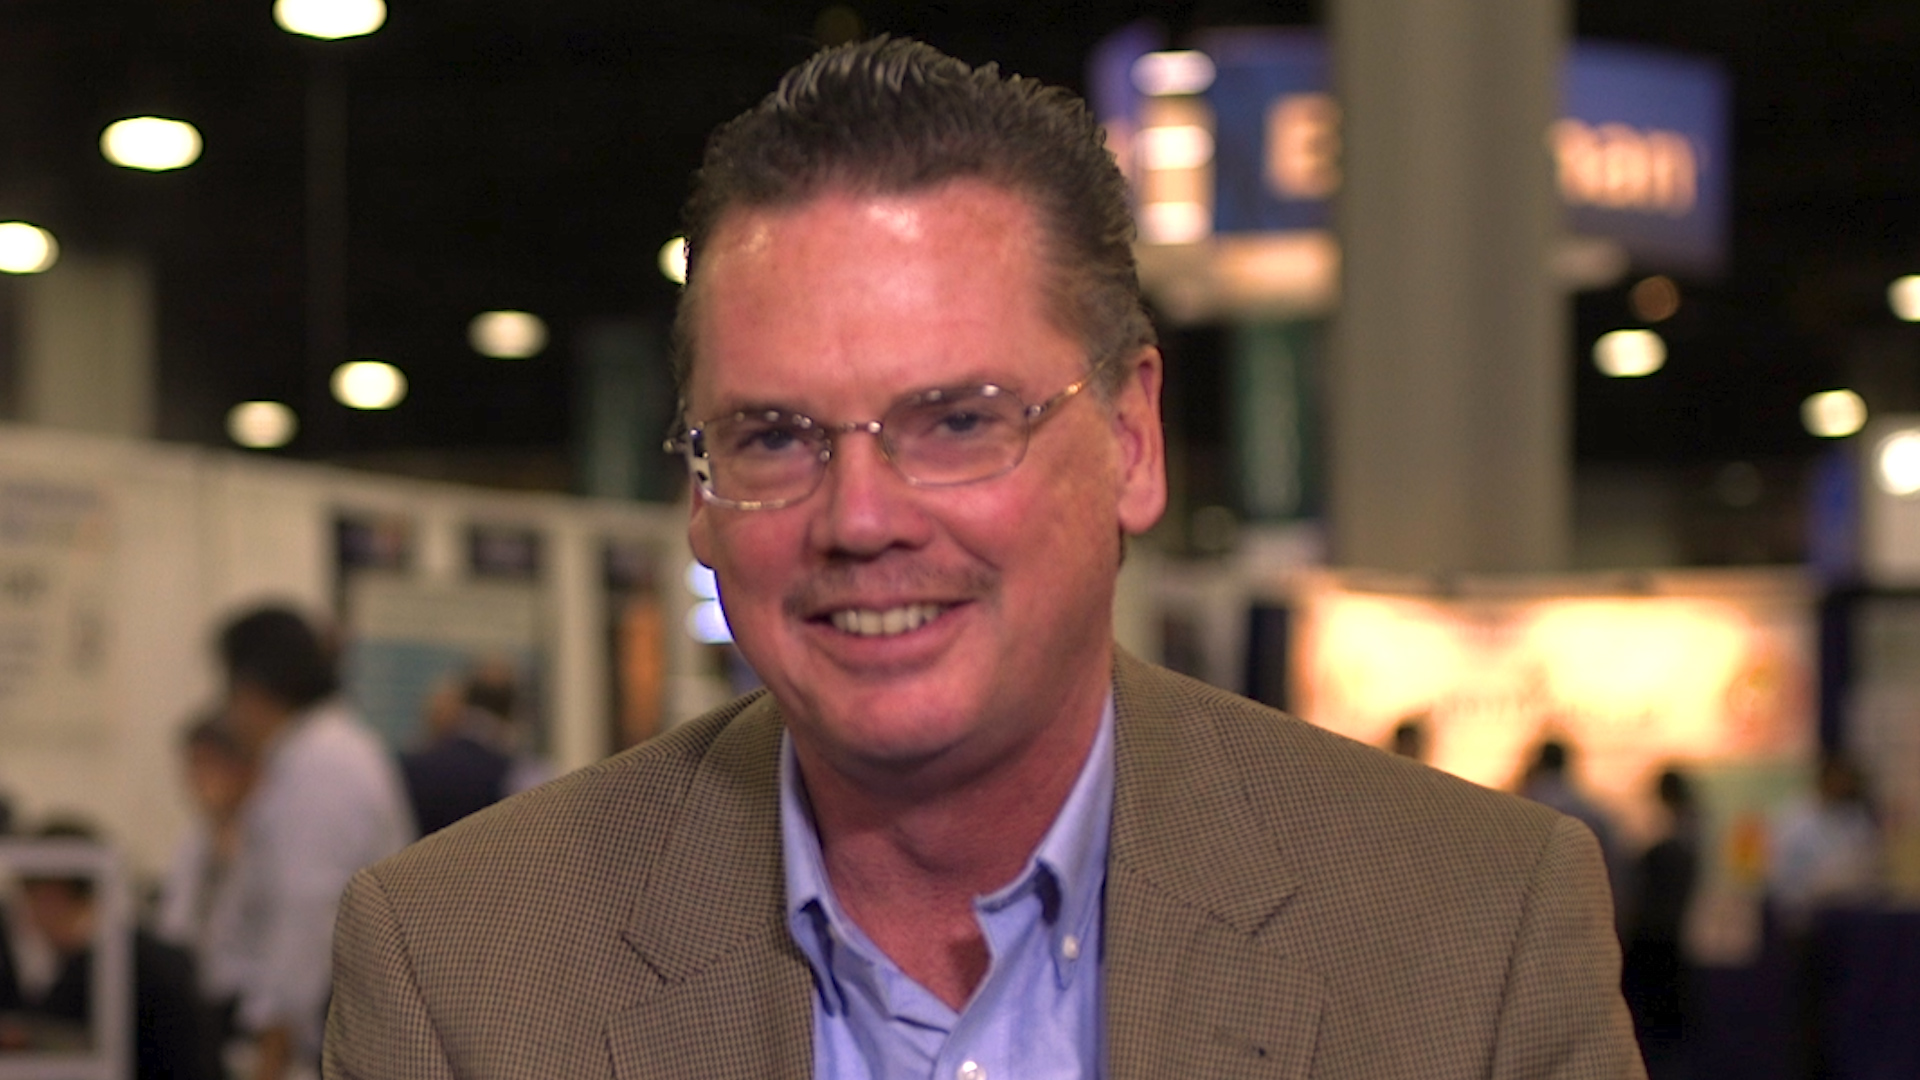 Video preview: Scott Schinlever Continues Analog-to-Digital Transformation at Gerber Technology